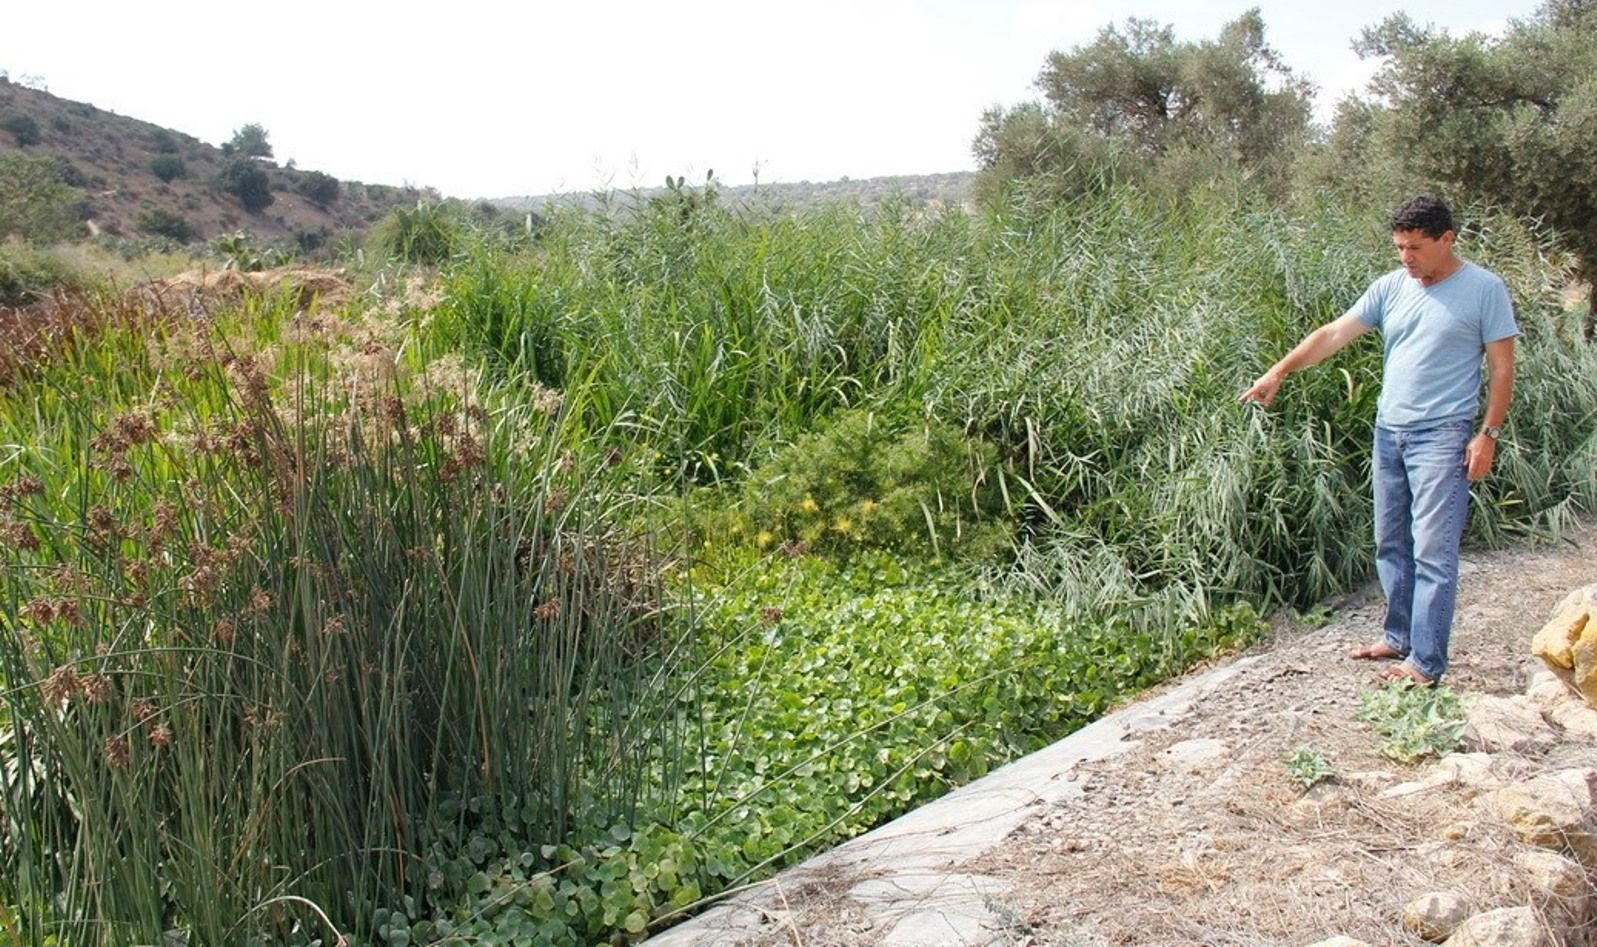 Ayala Water & Ecology CEO Eli Cohen among his plants at Moshav Tzipori. Photo: courtesy